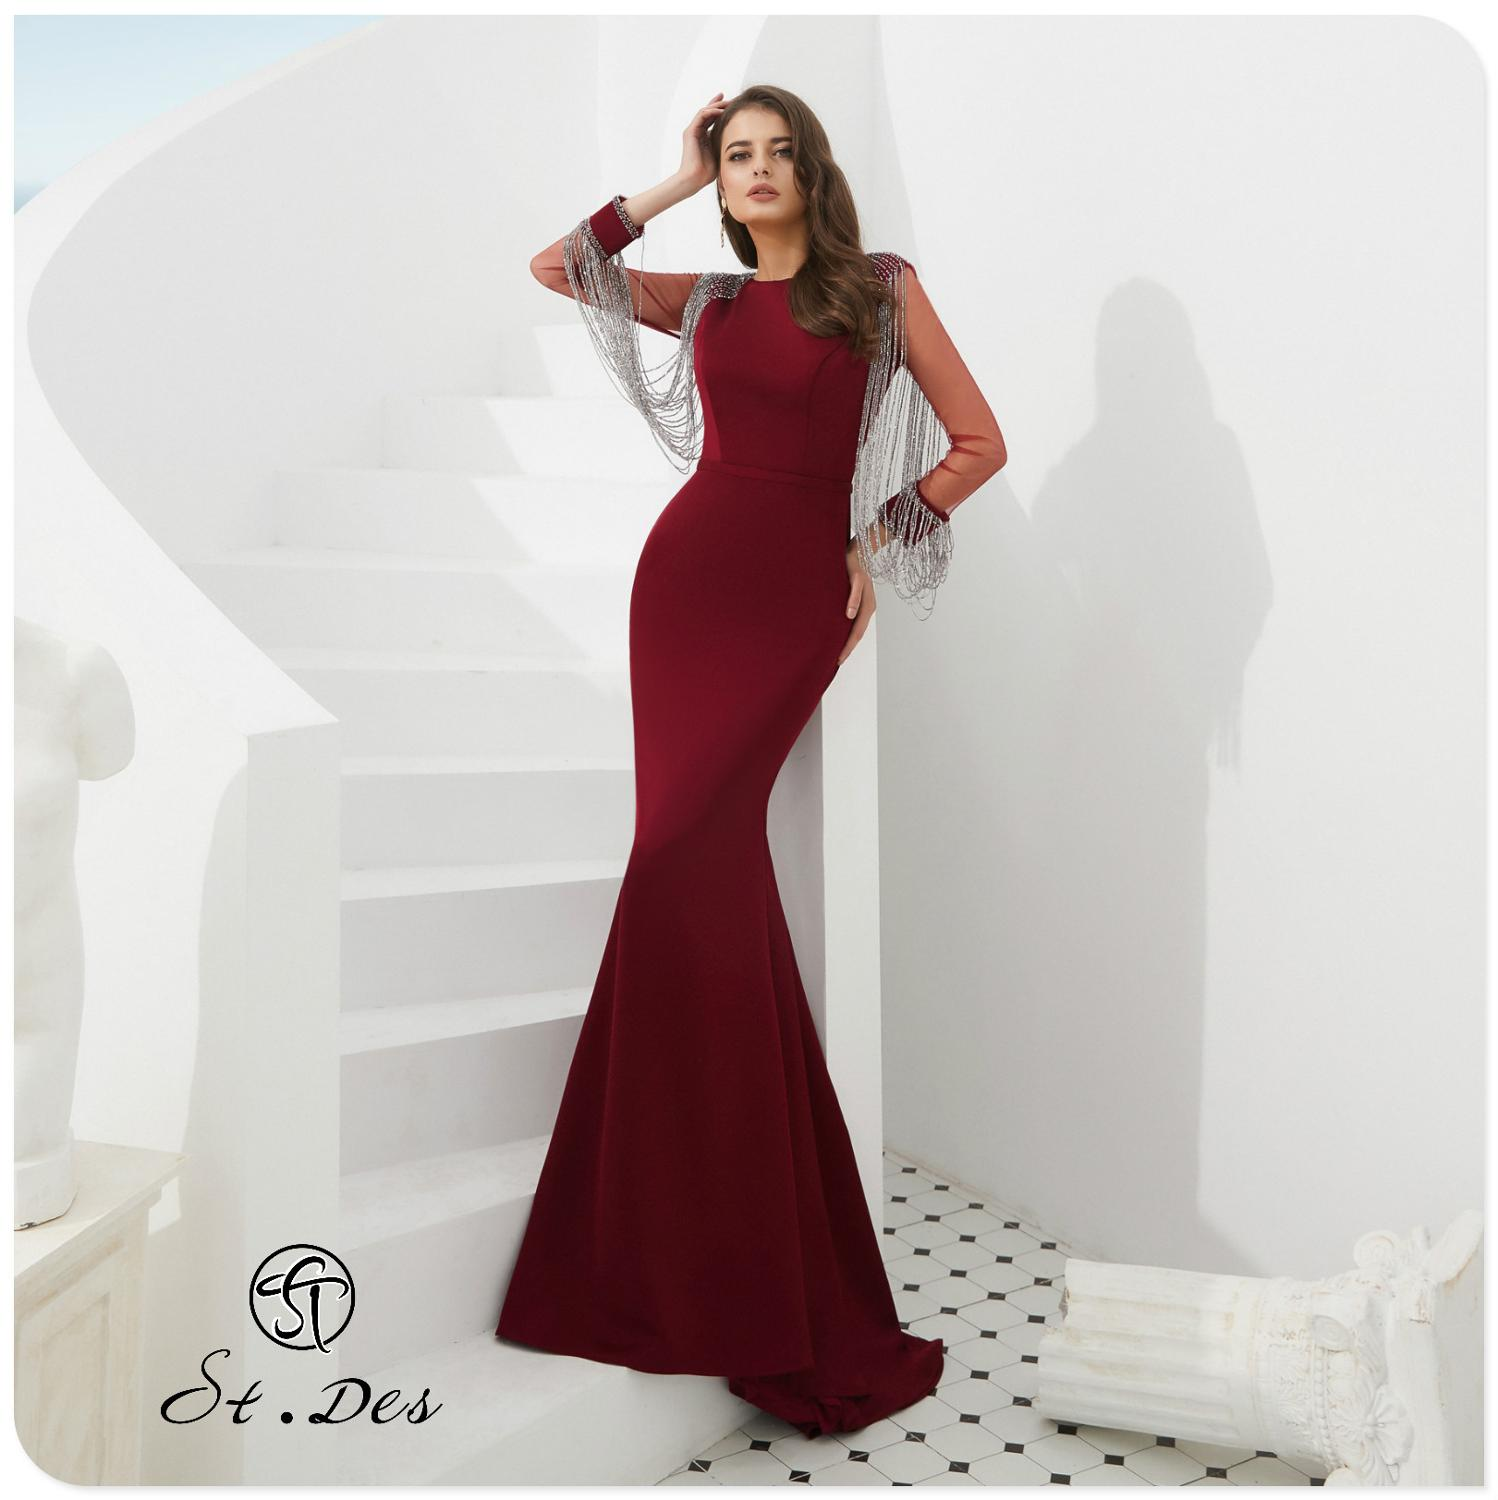 S.T.DES Evening Dress 2020 New Arrival Burgundy Beading Mermaid Boat Neck Wine Long Sleeve Floor Length Party Dress Dinner Gowns